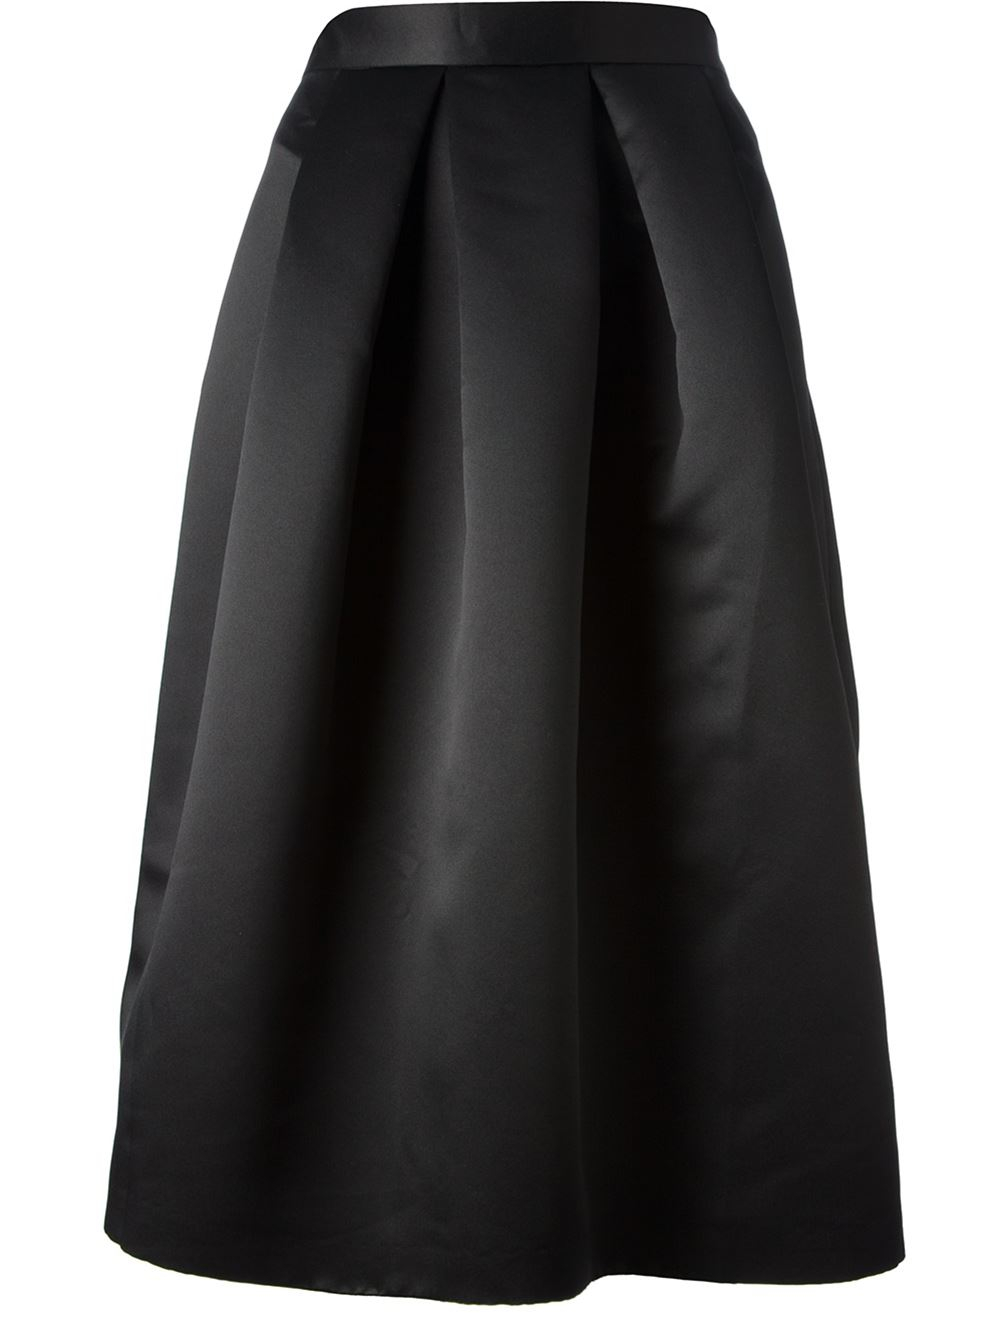 lulu co satin box pleated skirt in black lyst